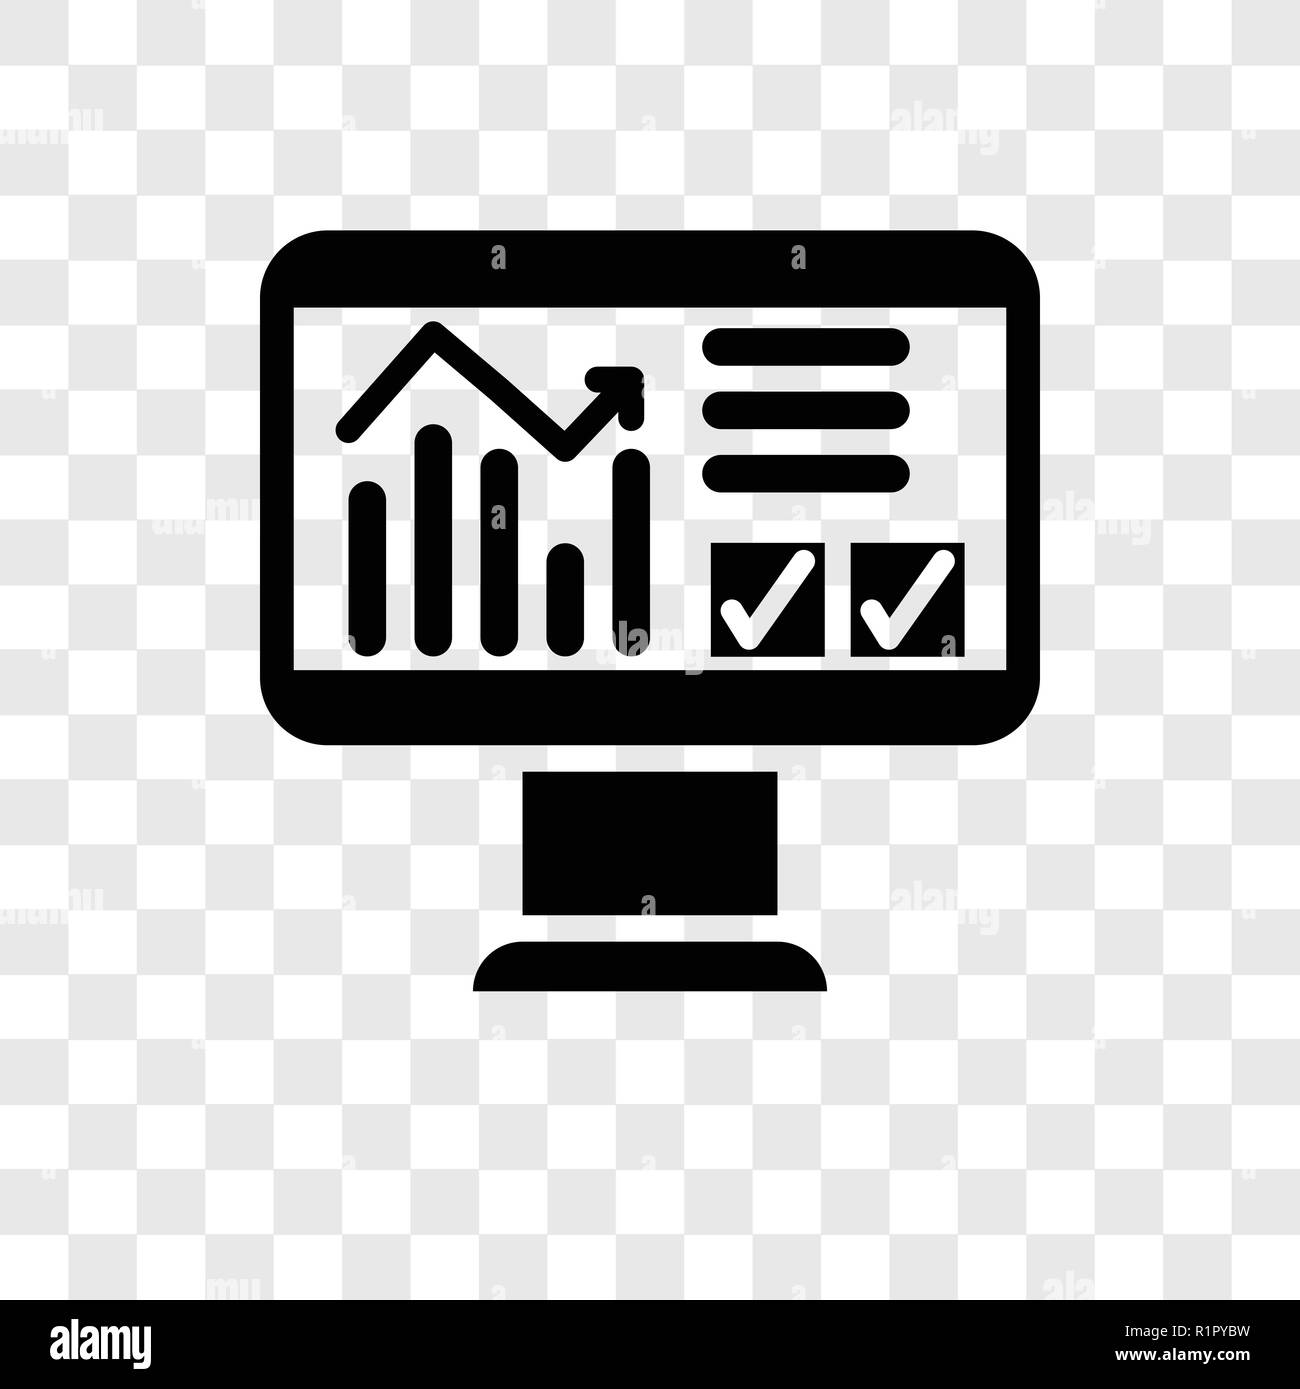 Data Analysis Vector Icon Isolated On Transparent Background Data Analysis Transparency Logo Concept Stock Vector Image Art Alamy ✓ free for commercial use ✓ high quality images. https www alamy com data analysis vector icon isolated on transparent background data analysis transparency logo concept image224853885 html